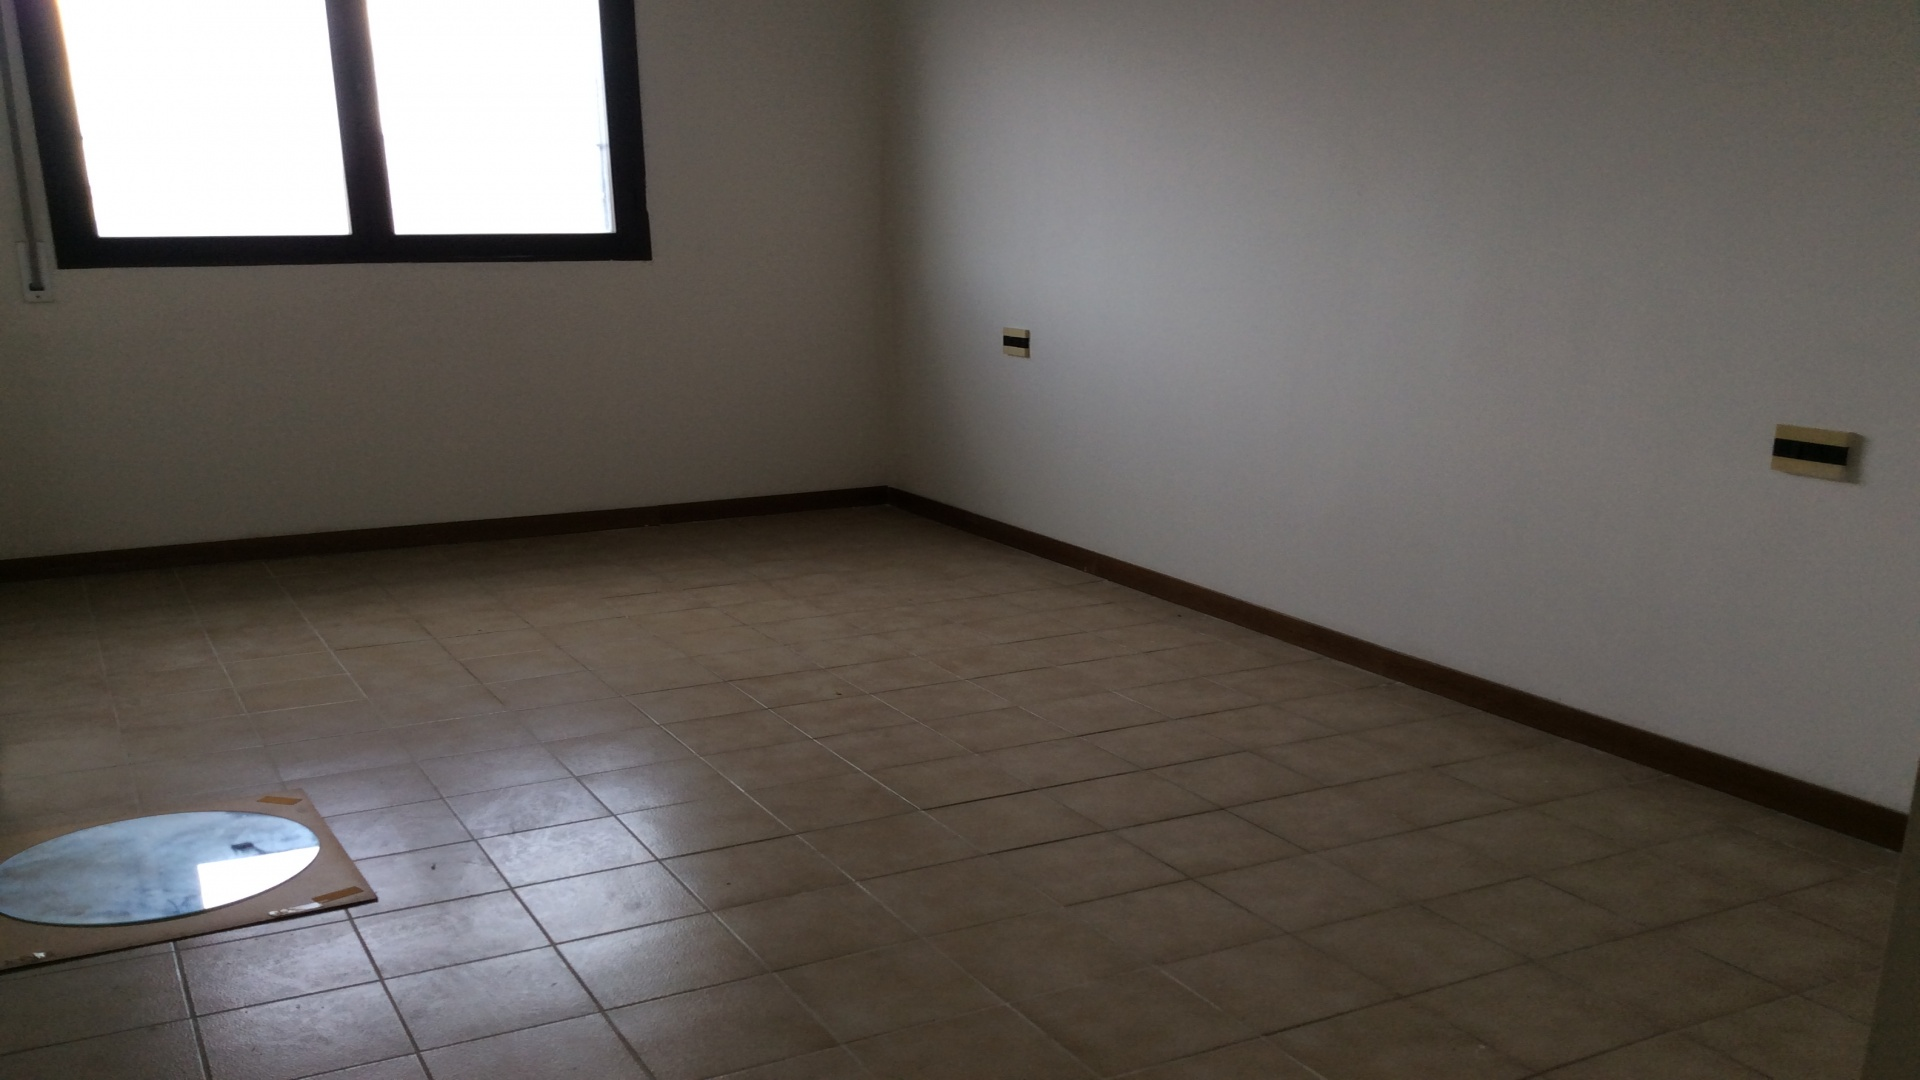 3 Bedrooms Bedrooms, ,2 BathroomsBathrooms,Appartamento,Vendita,1072